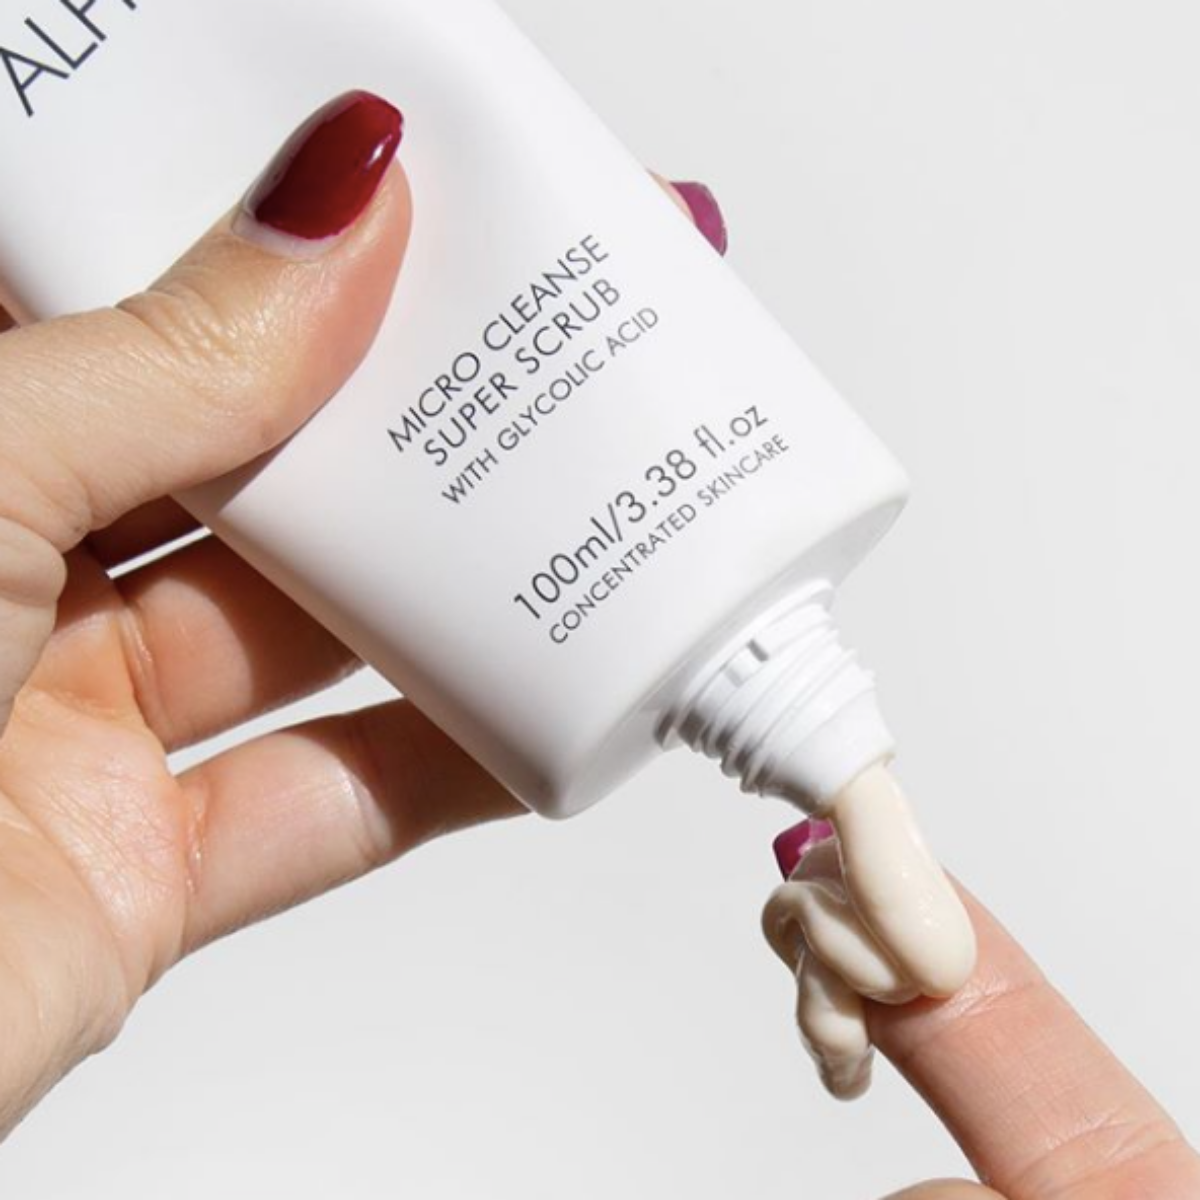 Alpha-H Micro Cleanse Super Scrub contains 12% Glycolic Acid to clear blocked pores and remove dead skin cells. Image source:  @Alphahskincare